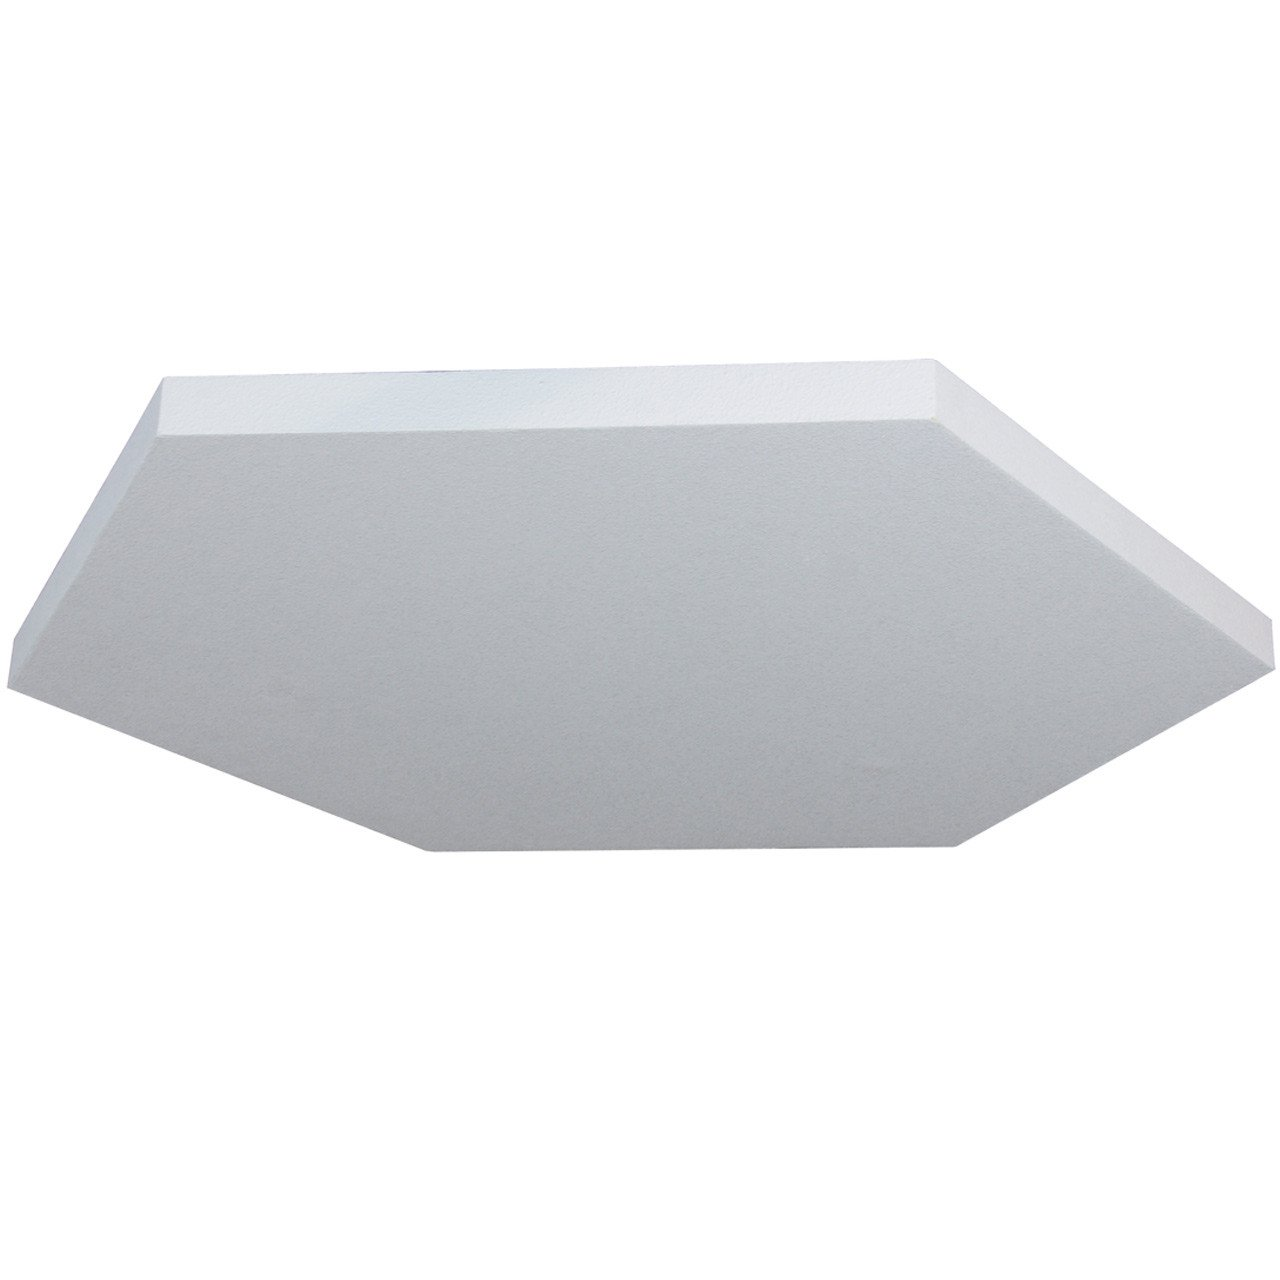 Ceiling Treatments - Primacoustic Hexus 48 Ceiling Acoustic Panel (1219 X 1219 X 38mm)